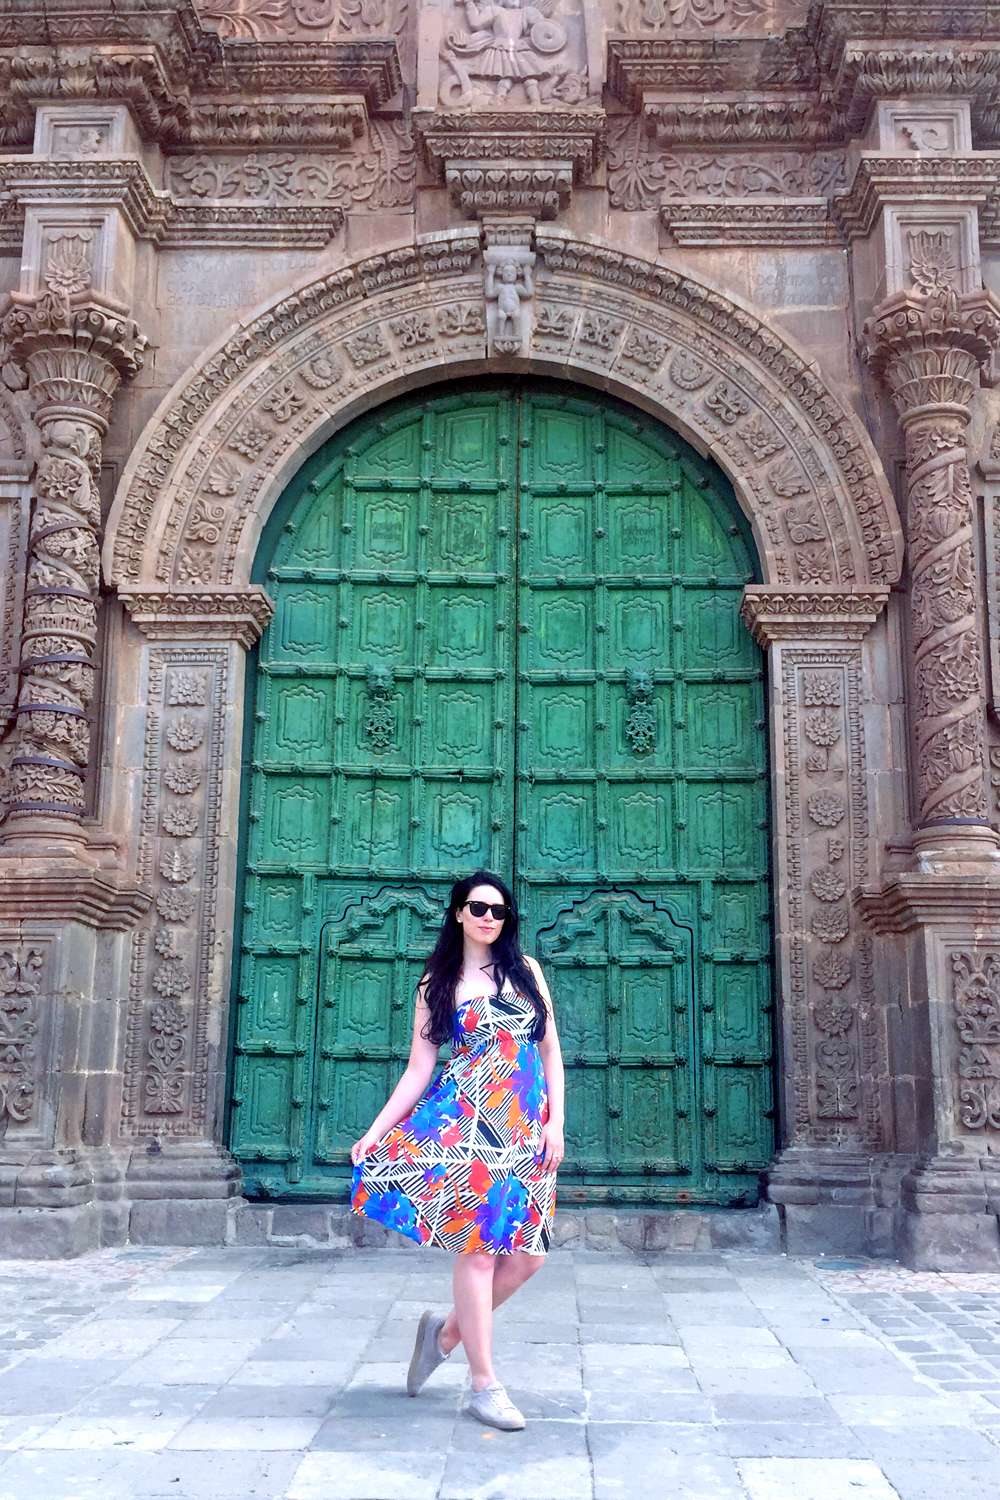 Cathedral Basilica of St. Charles Borromeo, Puno, Peru - travel & culture blog